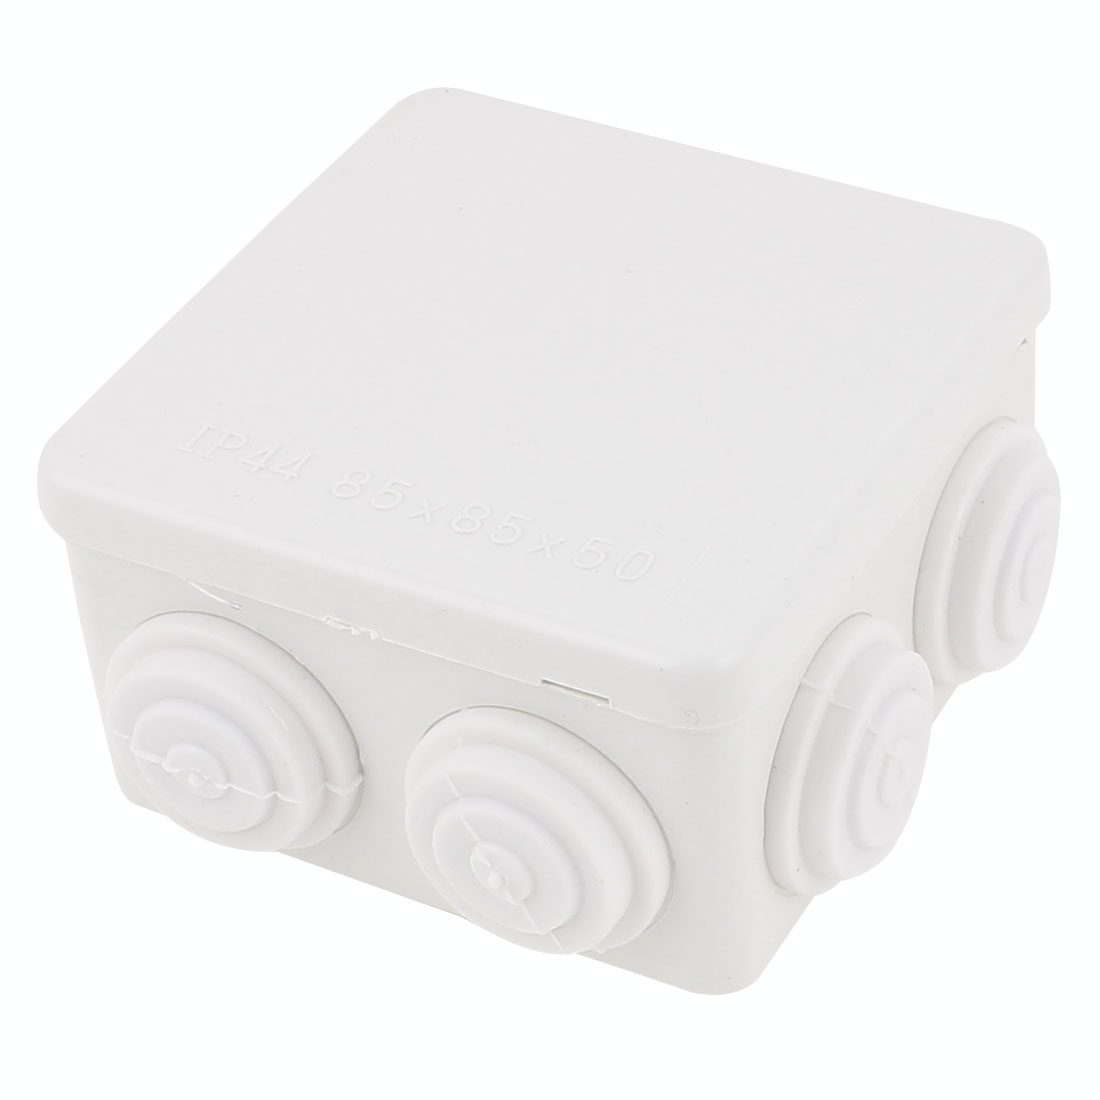 White ABS Dustproof IP44 Enclosure Square Junction Box 85x85x50mm